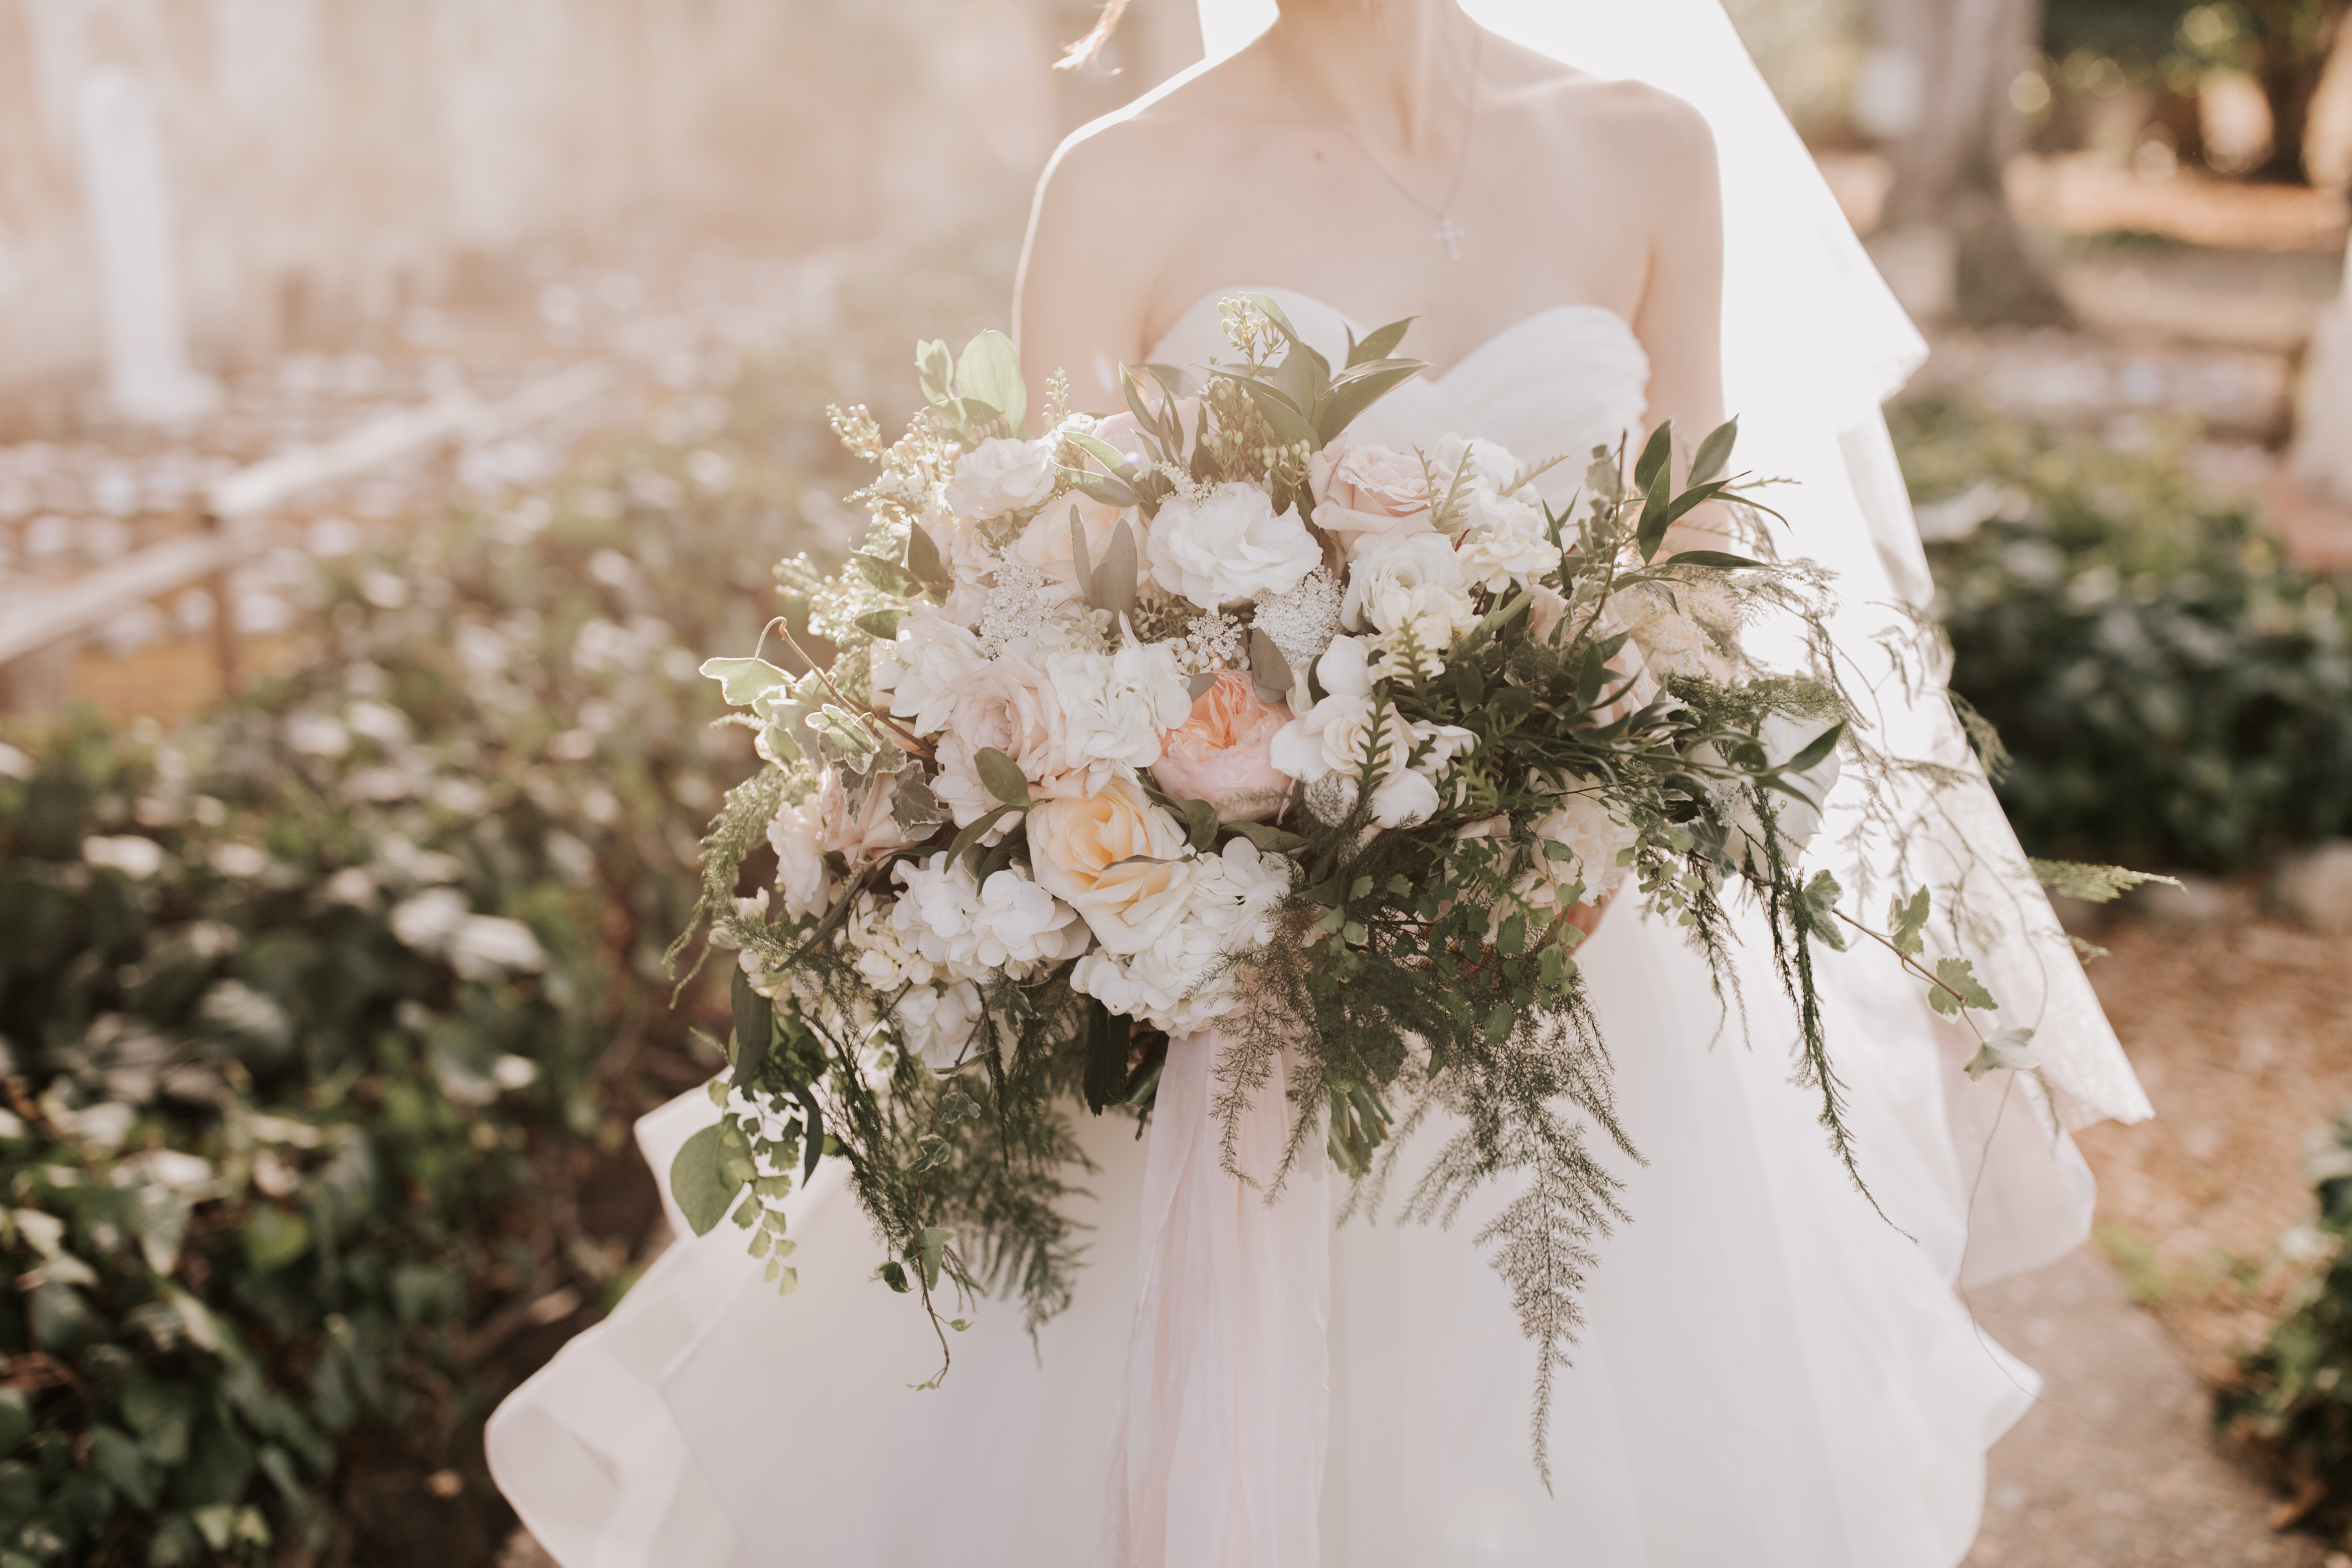 A lush cream wedding with lots of greenery